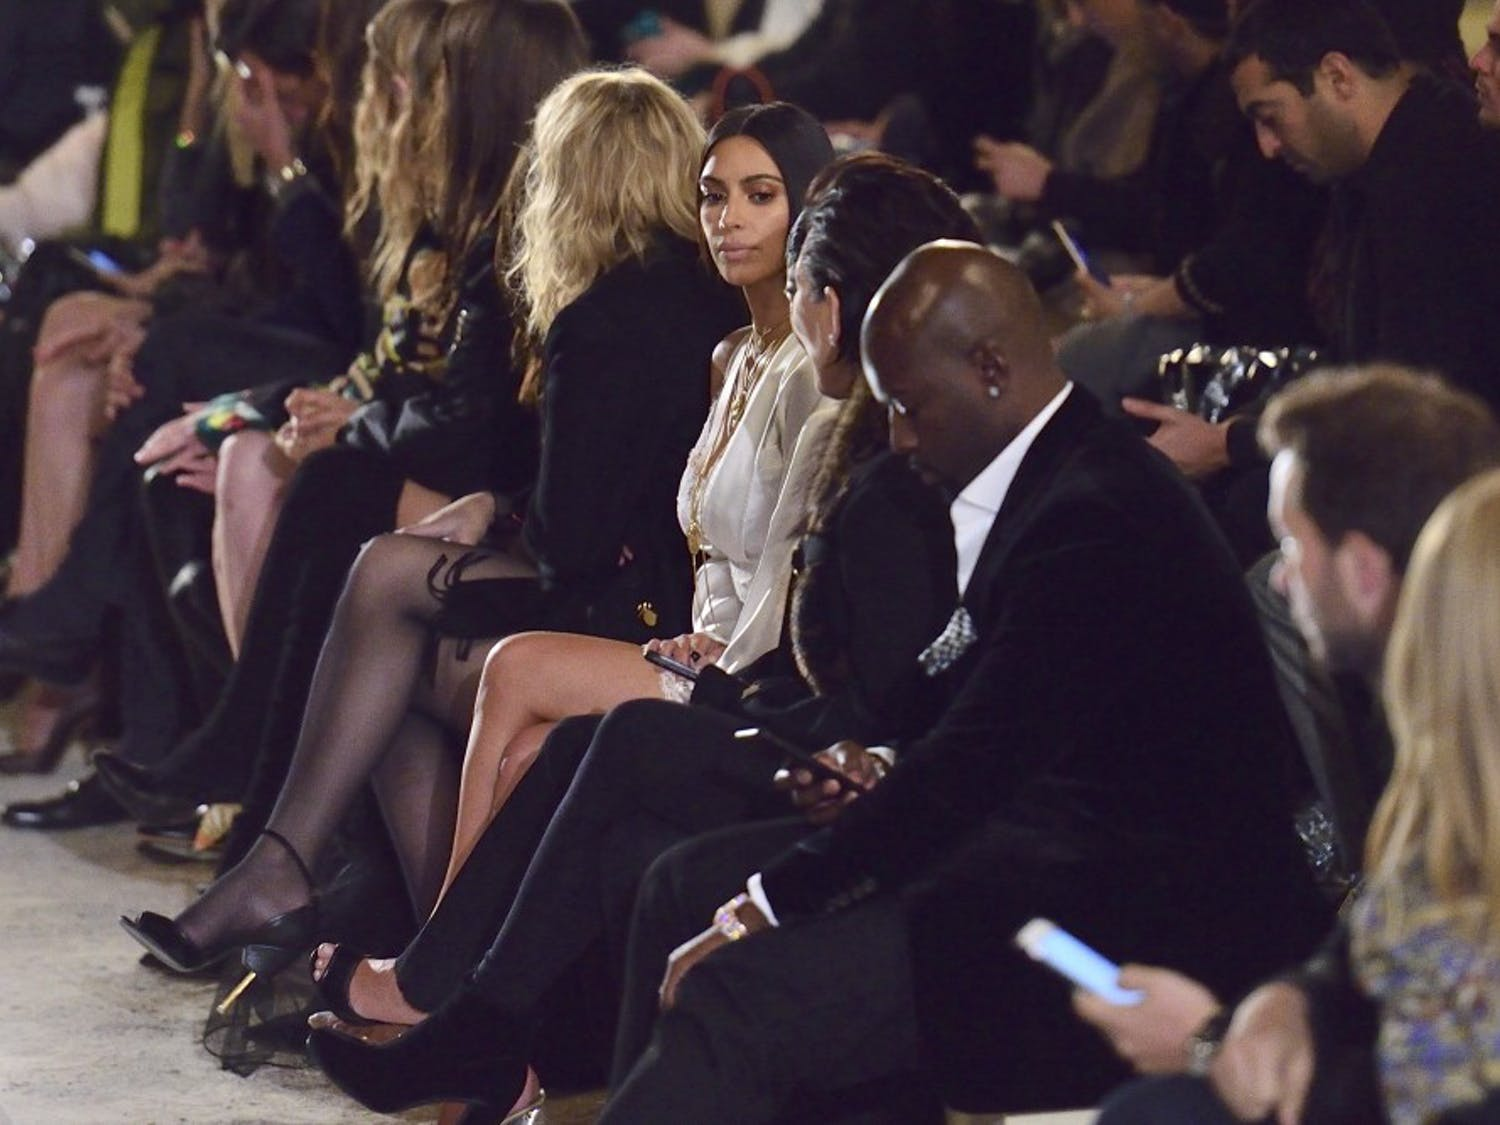 Kim Kardashian West attends the Givenchy show on Sunday, Oct. 2, 2016 as a part of Paris Fashion Week Ready to Wear Spring/Summer 2017 in Paris, France. (Aurore Marechal/Abaca Press/TNS)